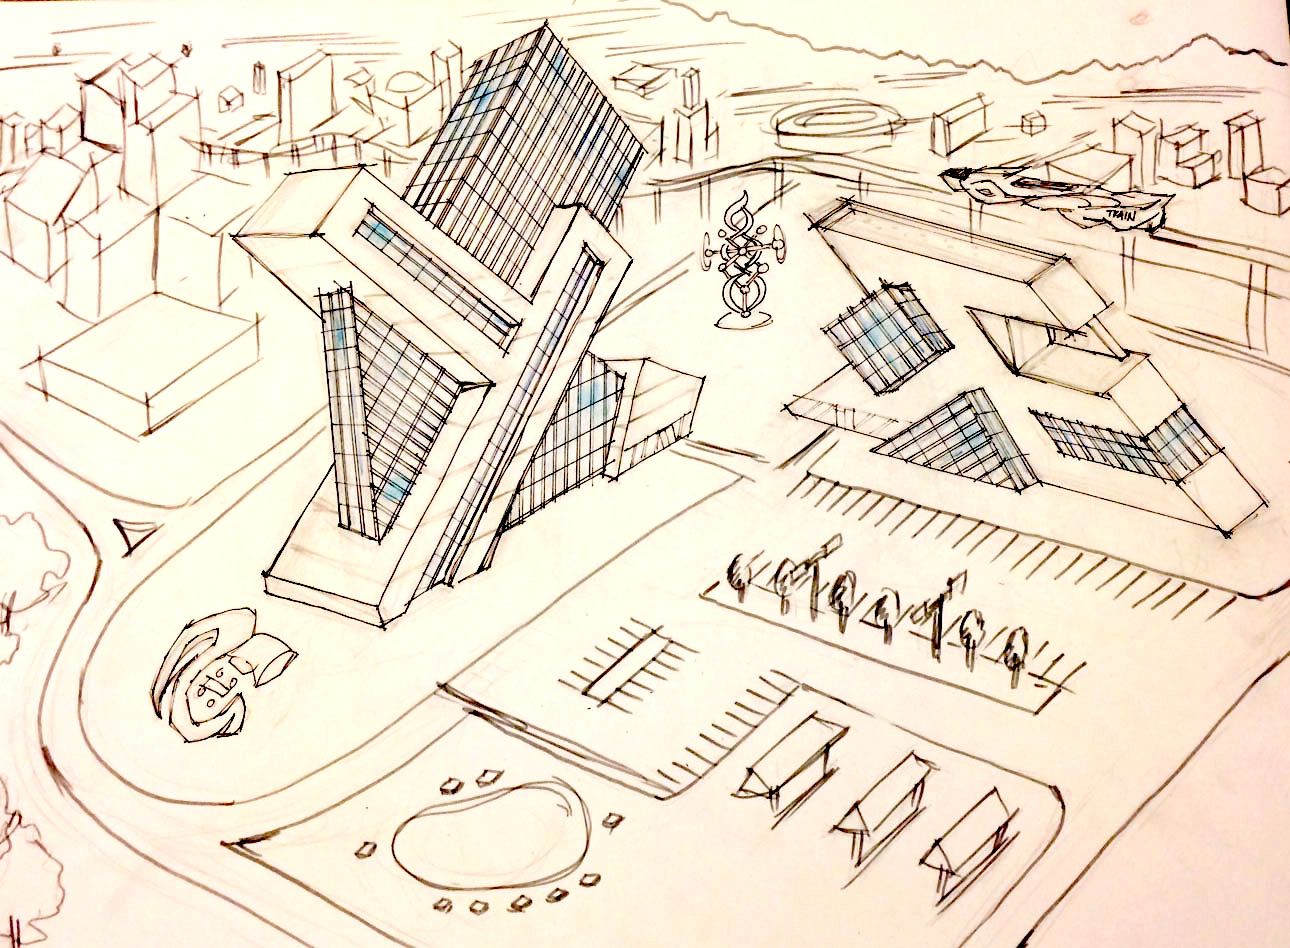 sketch_jagged buildings concept sketch